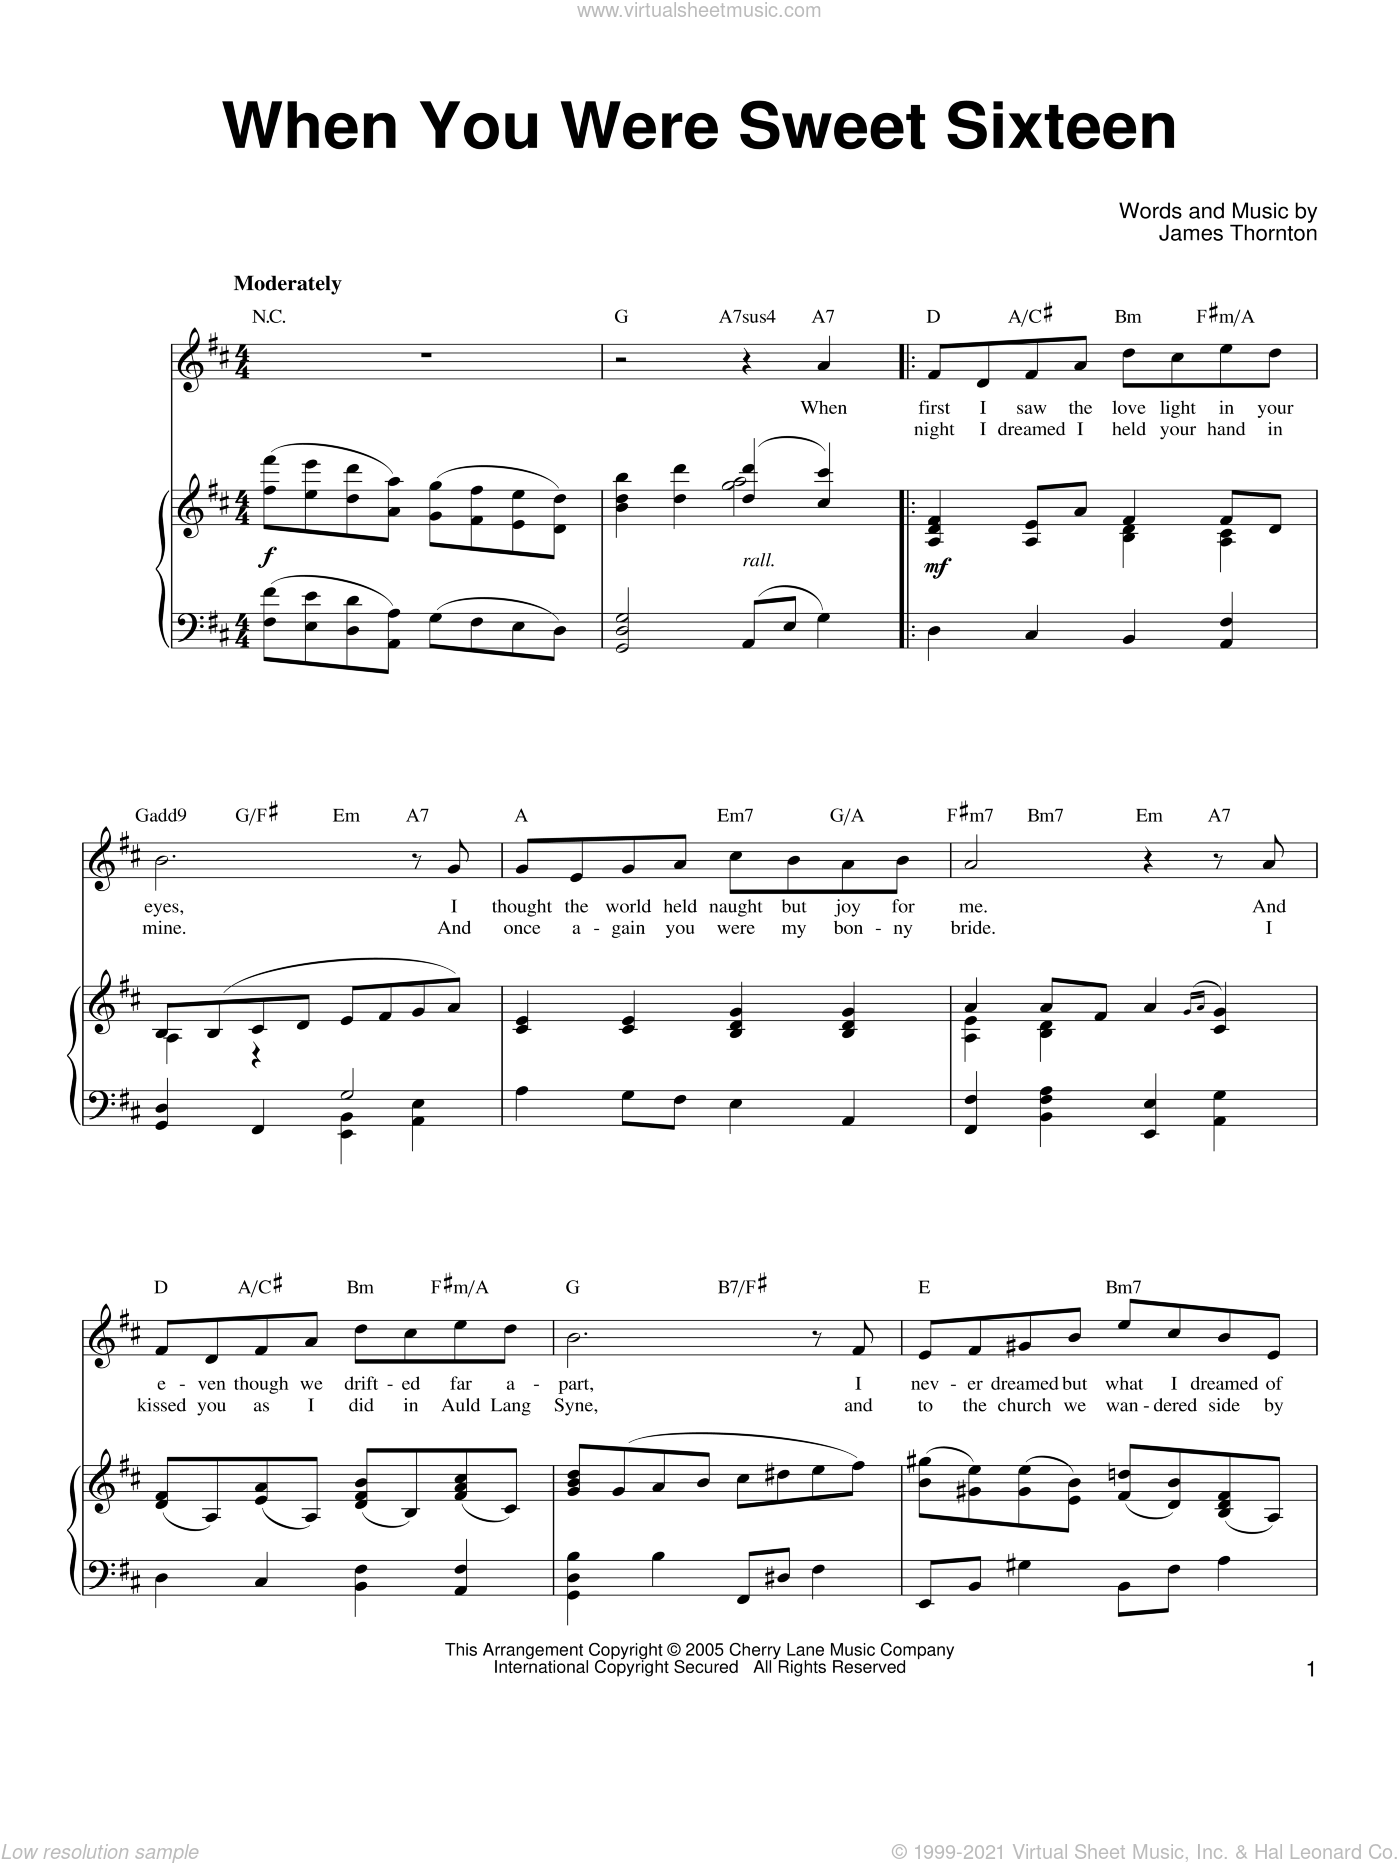 When You Were Sweet Sixteen sheet music for voice, piano or guitar by Ronan Tynan and James Thornton. Score Image Preview.